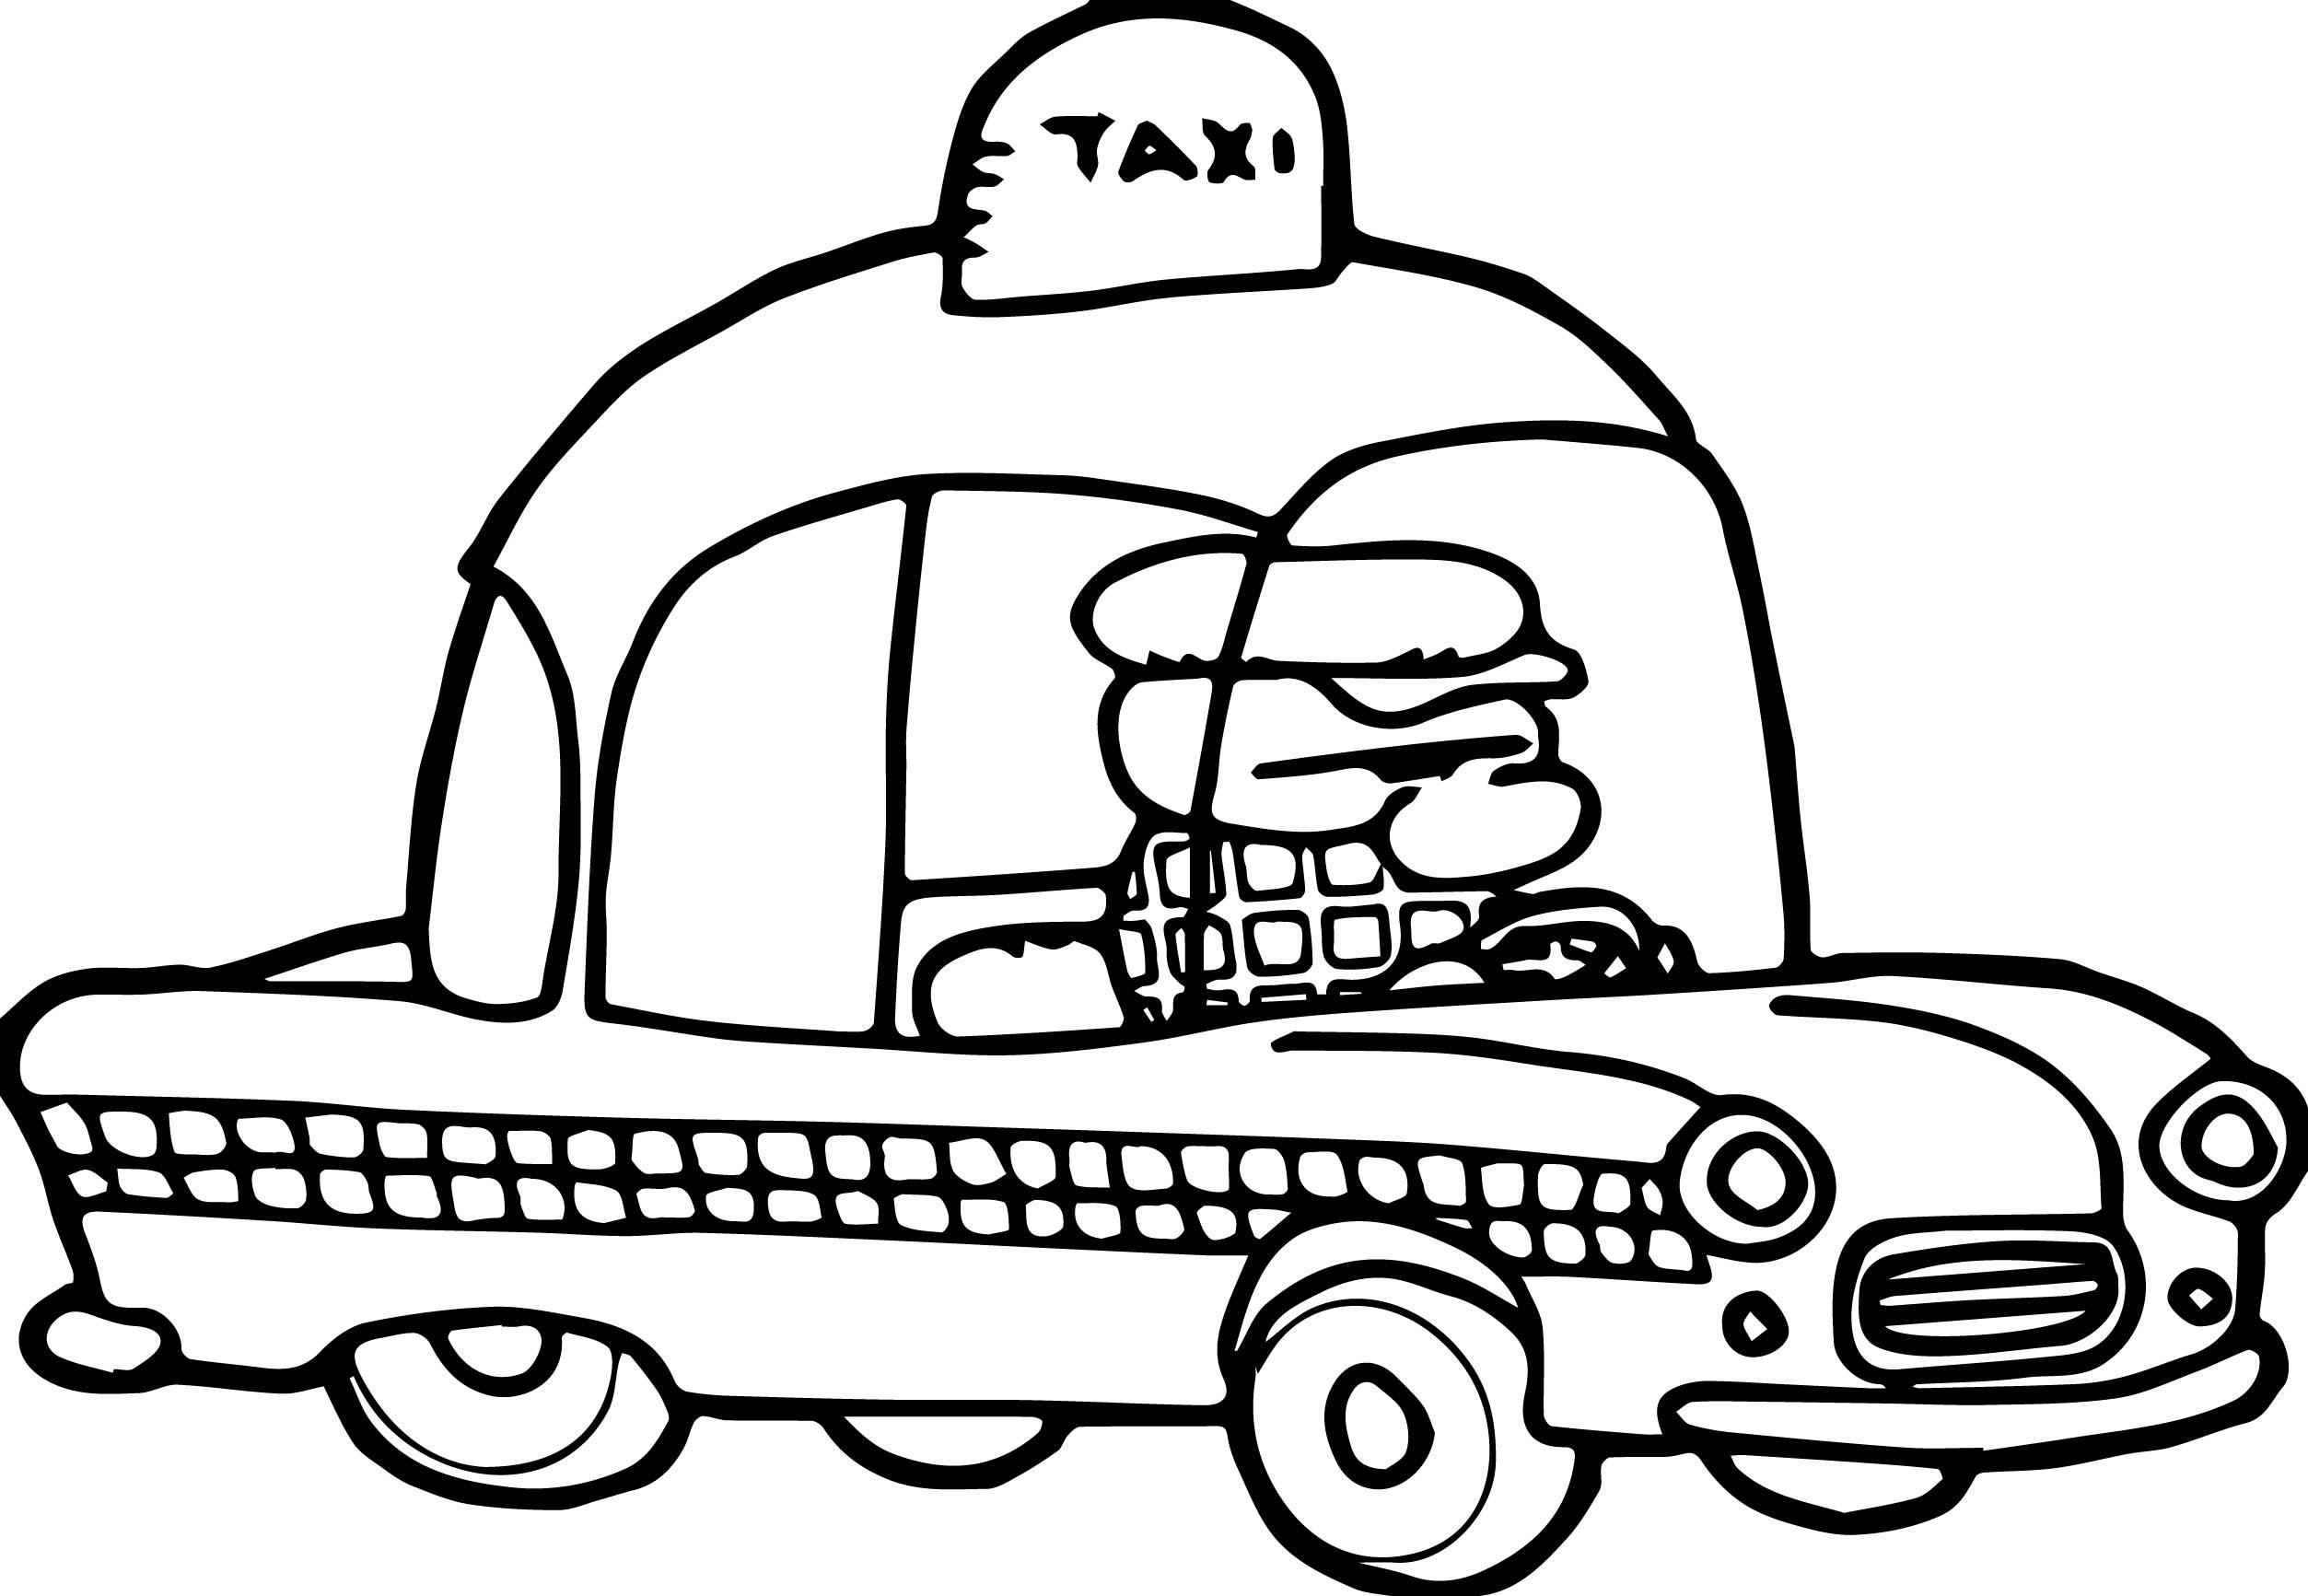 taxi colouring pages basic taxi toy car coloring page cars coloring pages colouring taxi pages